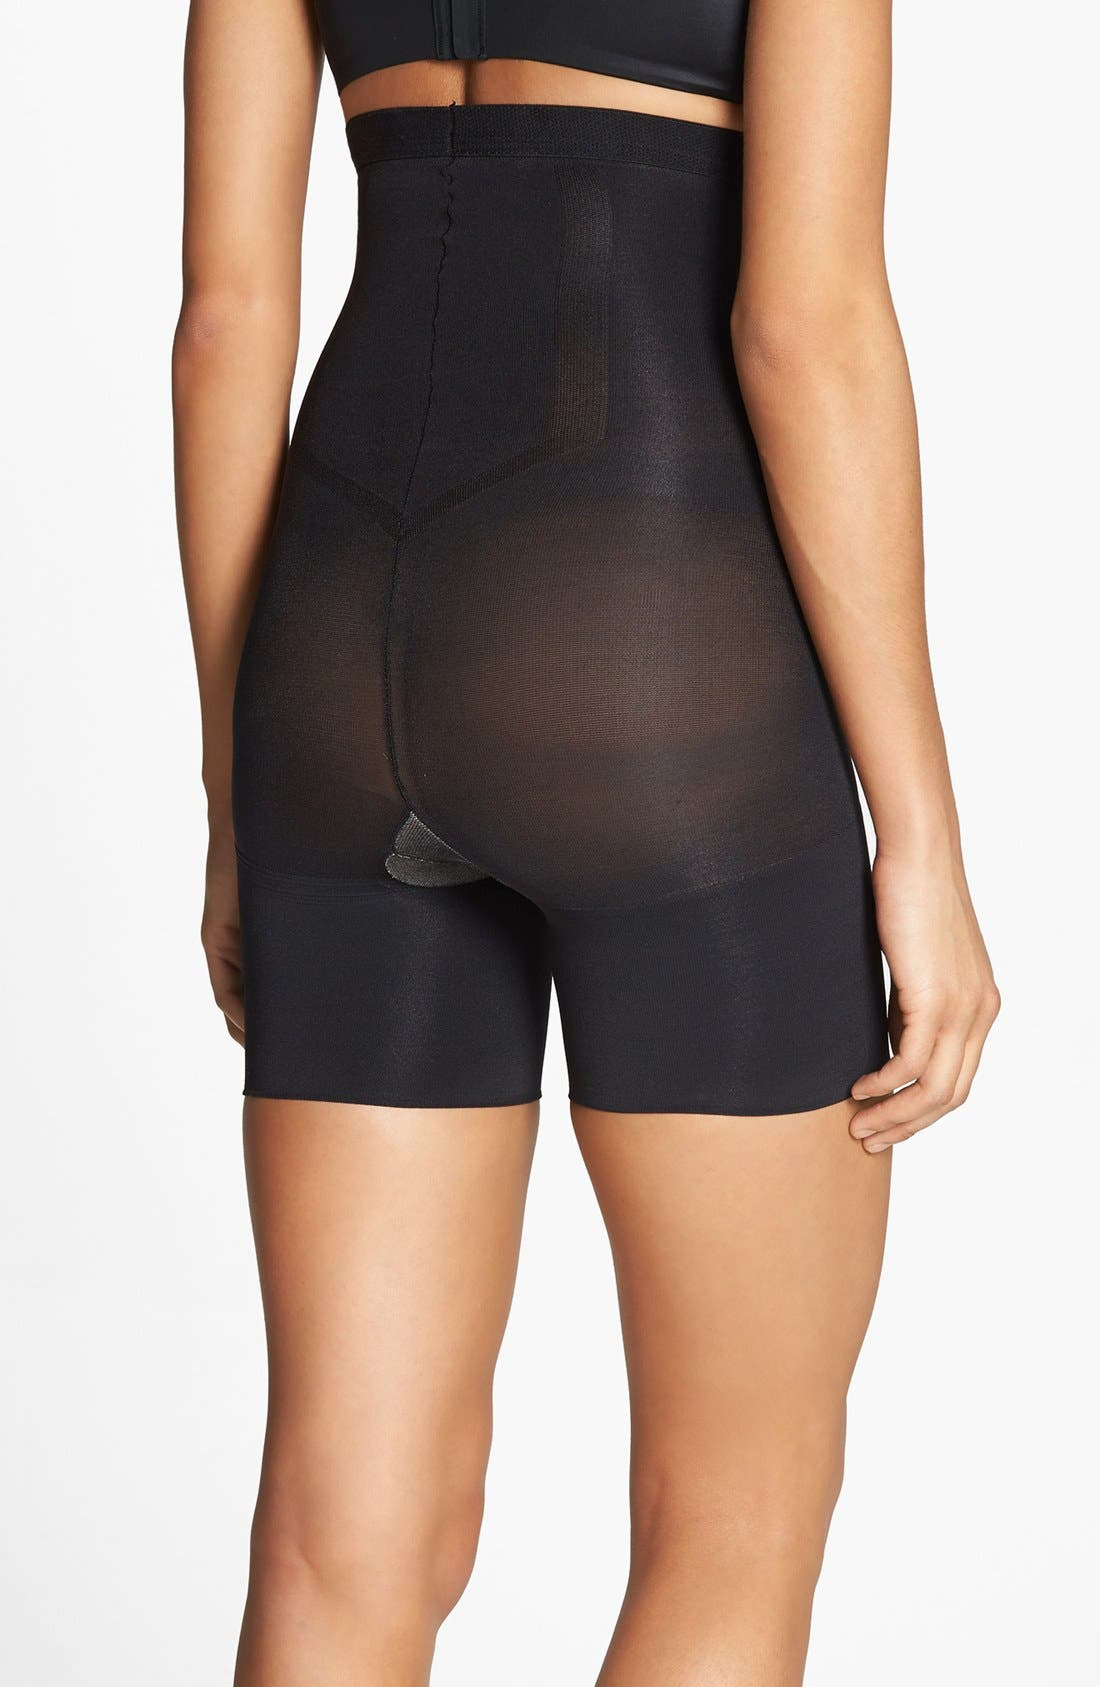 Alternate Image 2  - SPANX® 'In-Power Line' Super Higher Power Tummy Control Shaper (Regular & Plus Size) (Online Only)